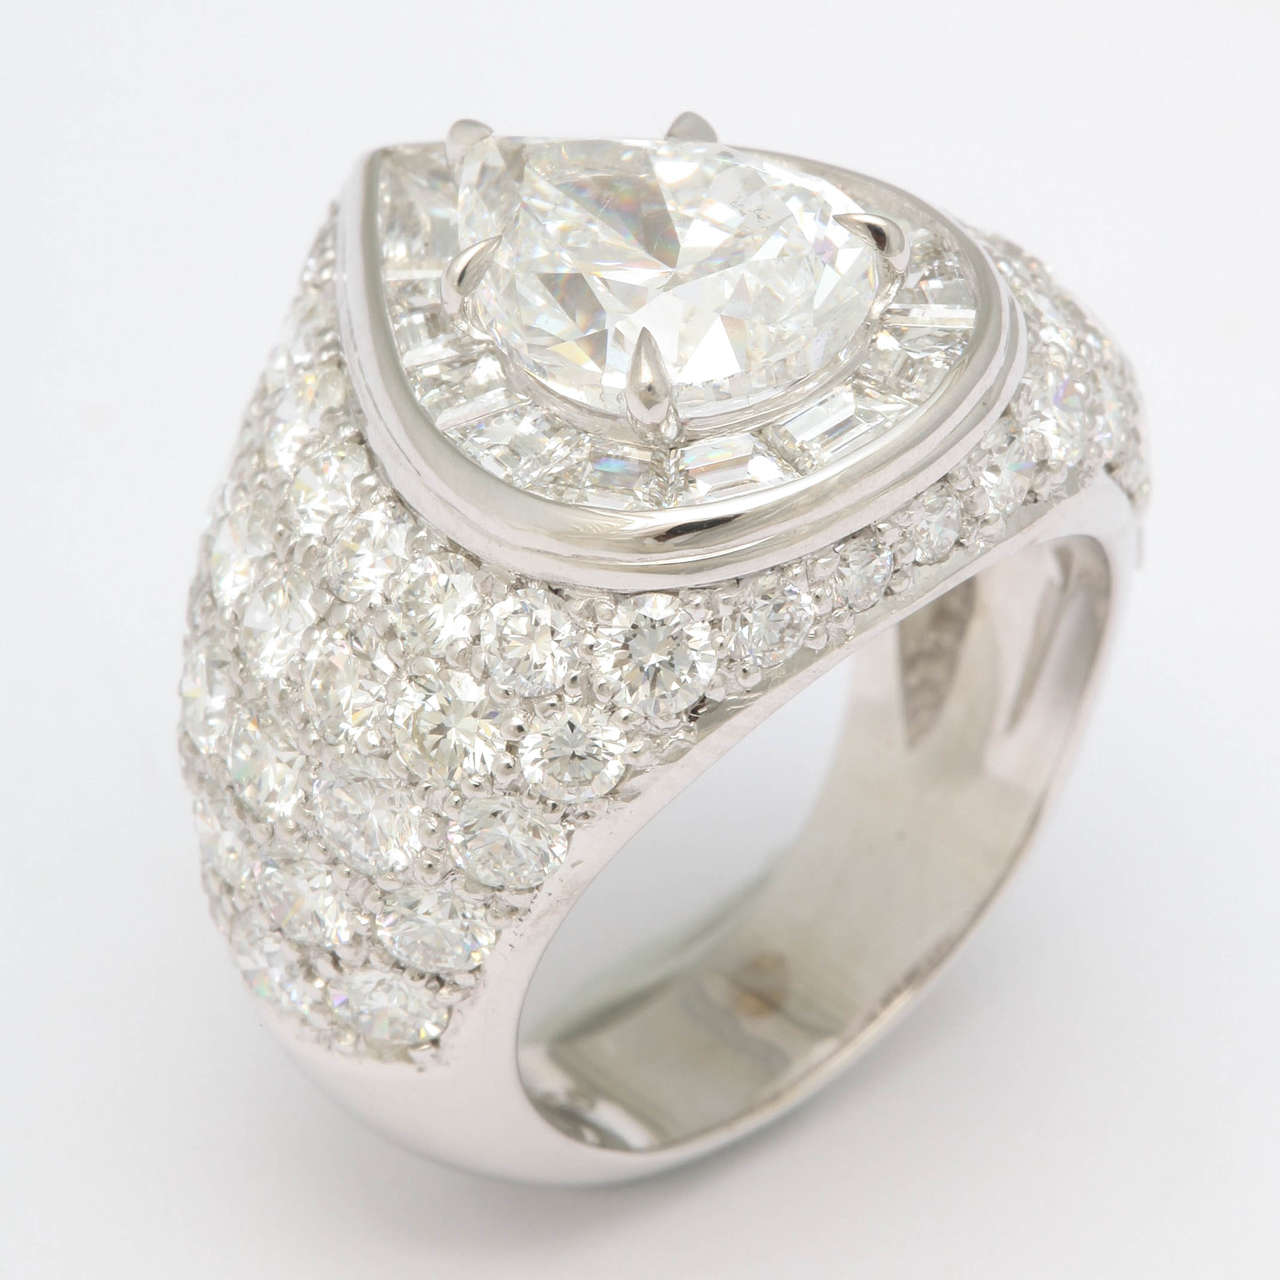 Magnificent Pear Shape Diamond RIng For Sale 2